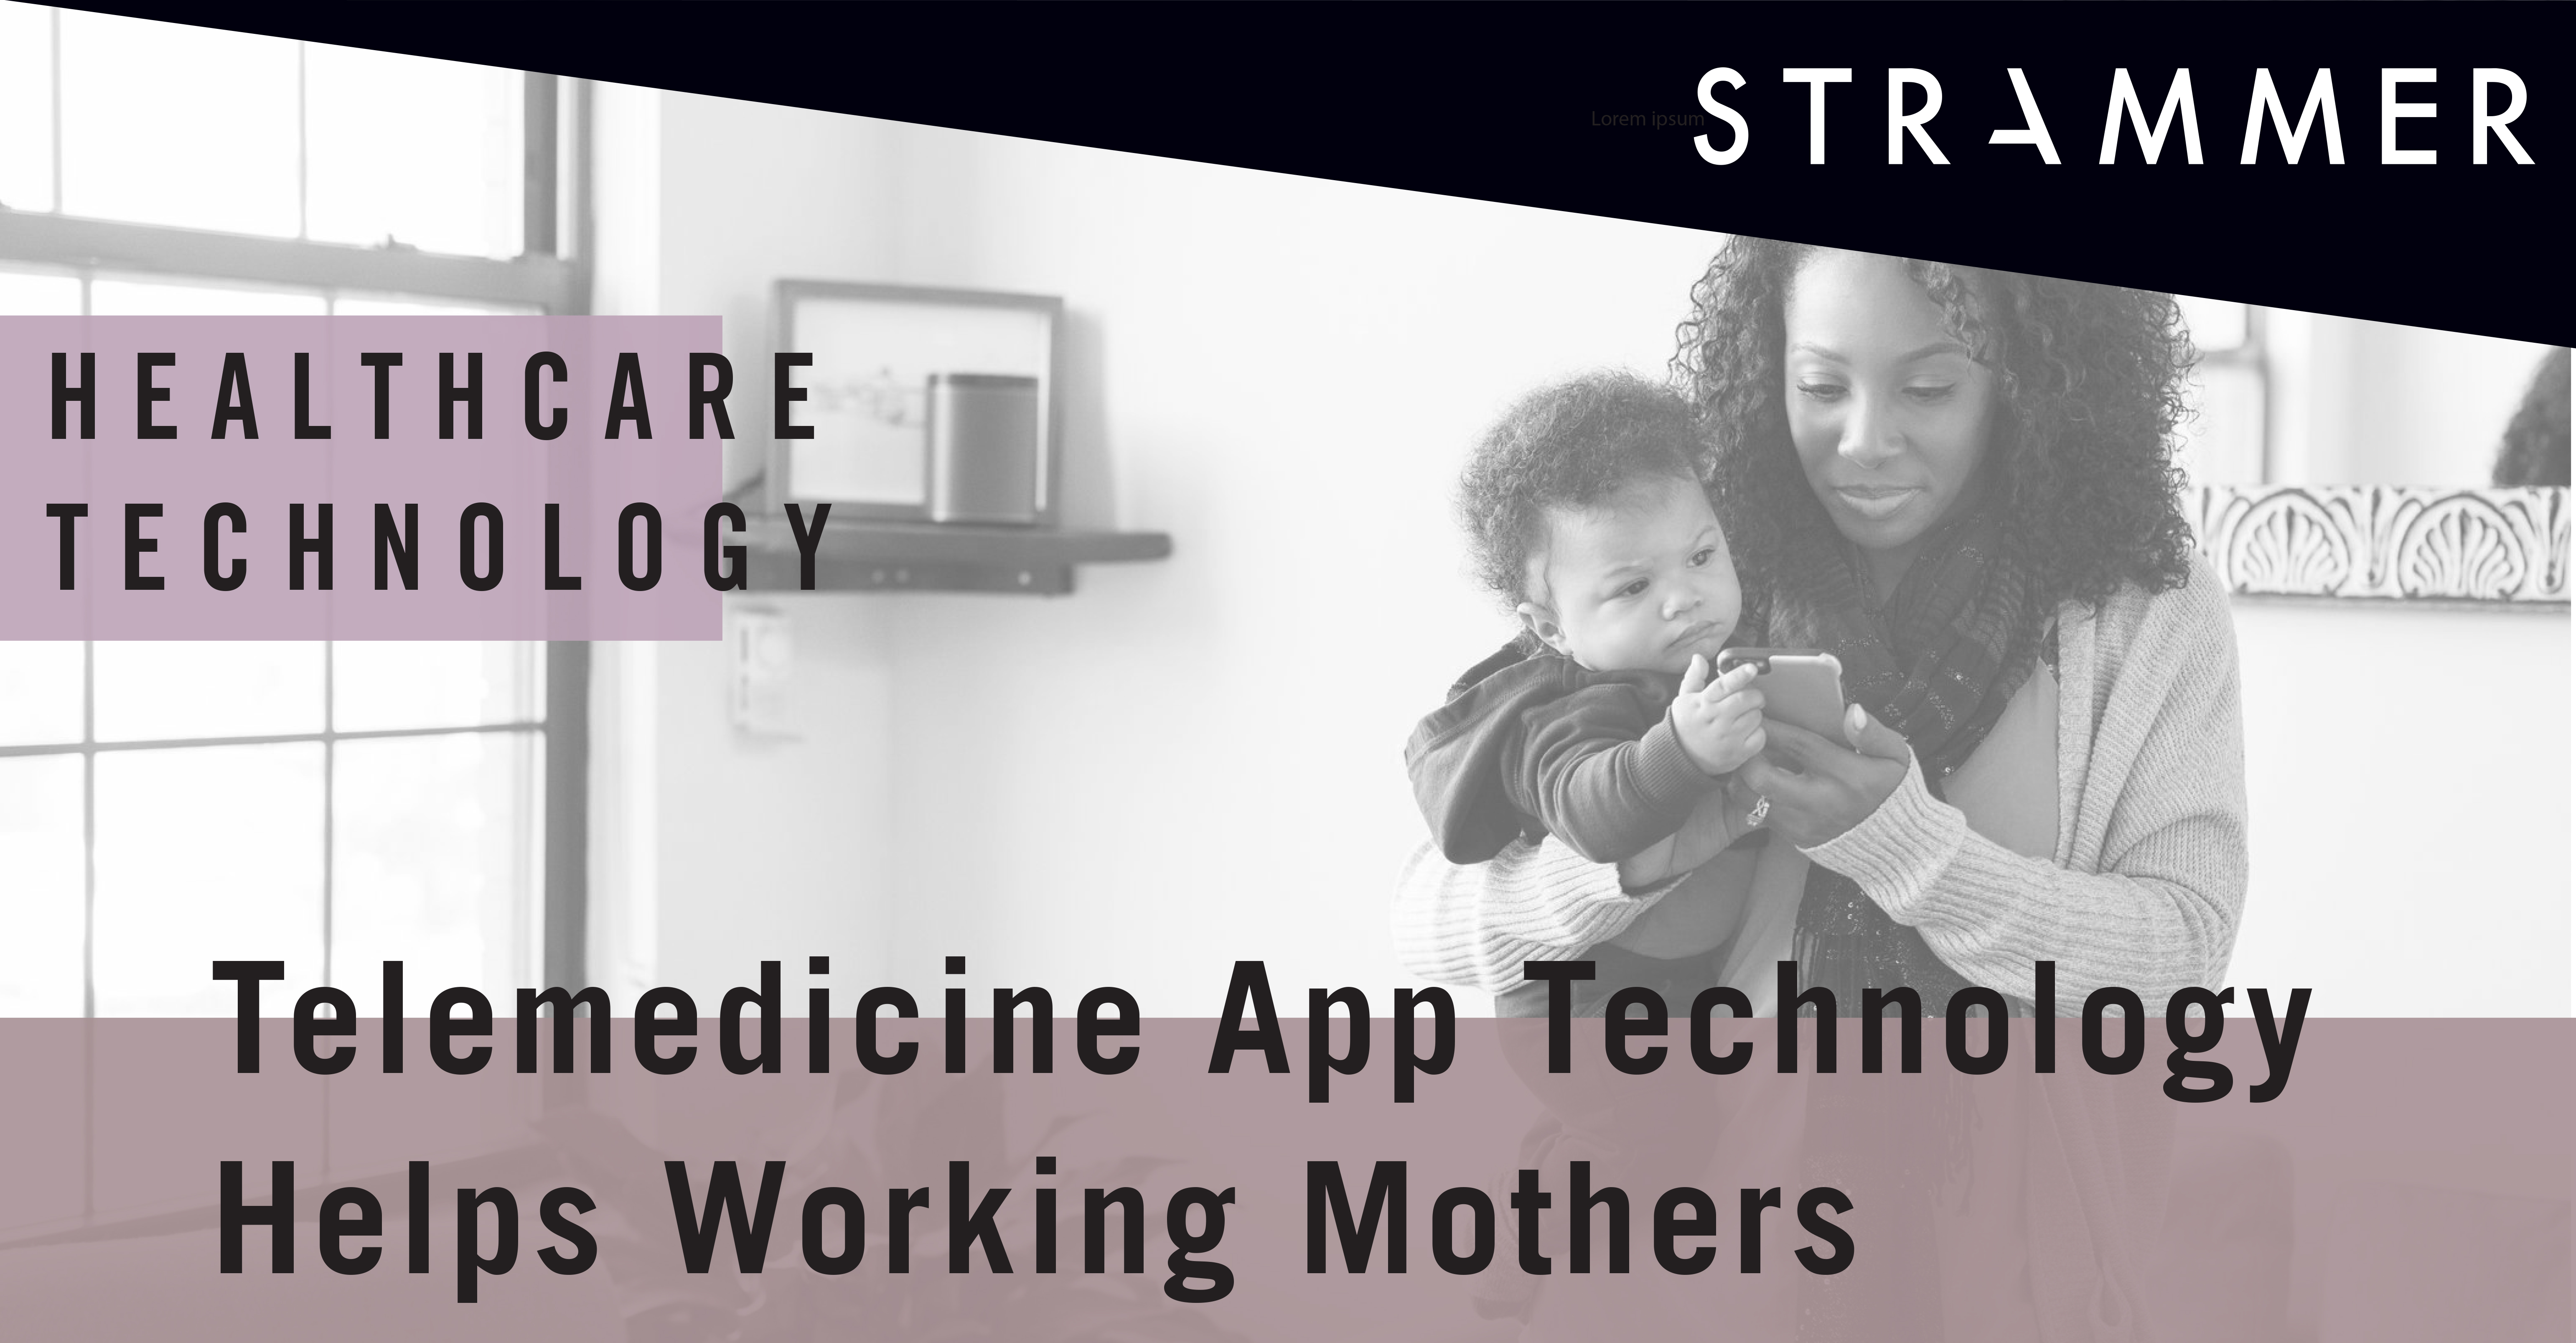 Telemedicine App Technology helps Working Mothers